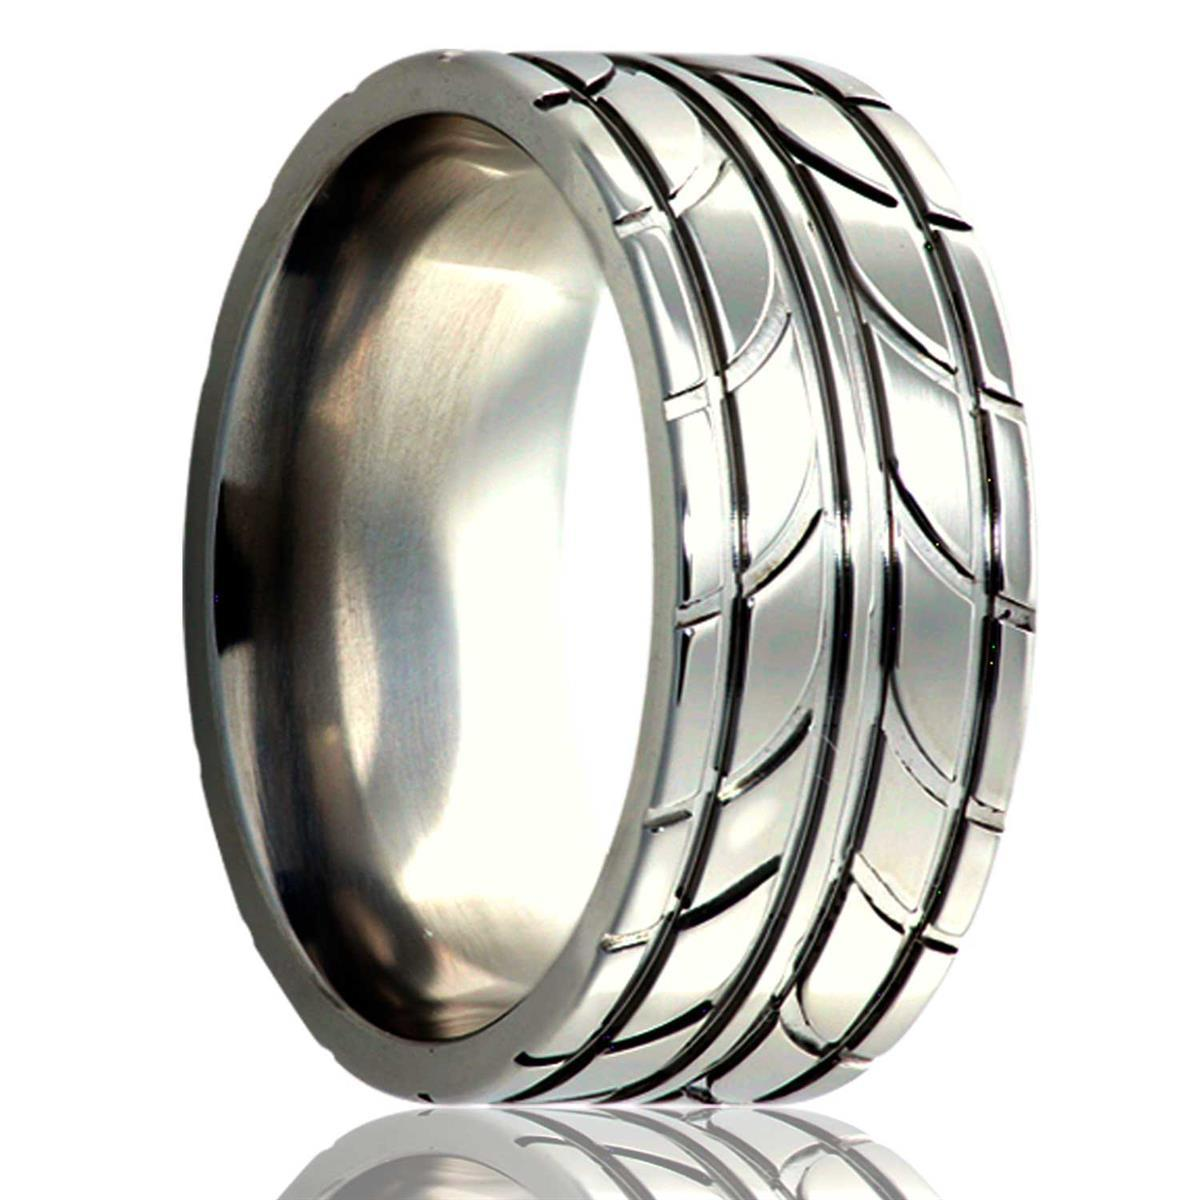 alternative metal, tire tread, men's wedding ring, kluh jewelers